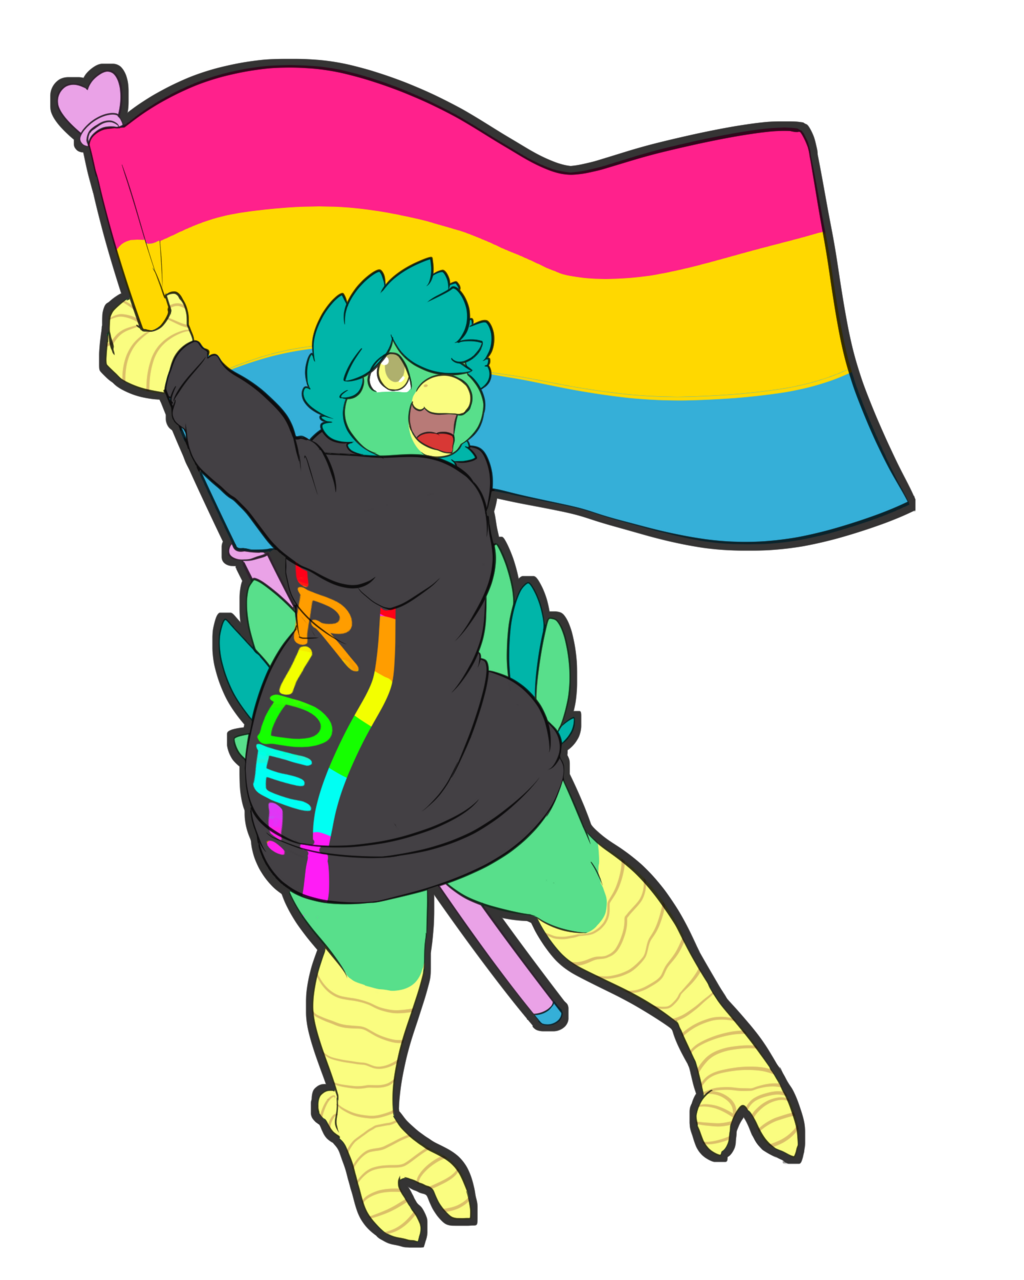 Most recent image: PRIDE! by CaineTheLongshot